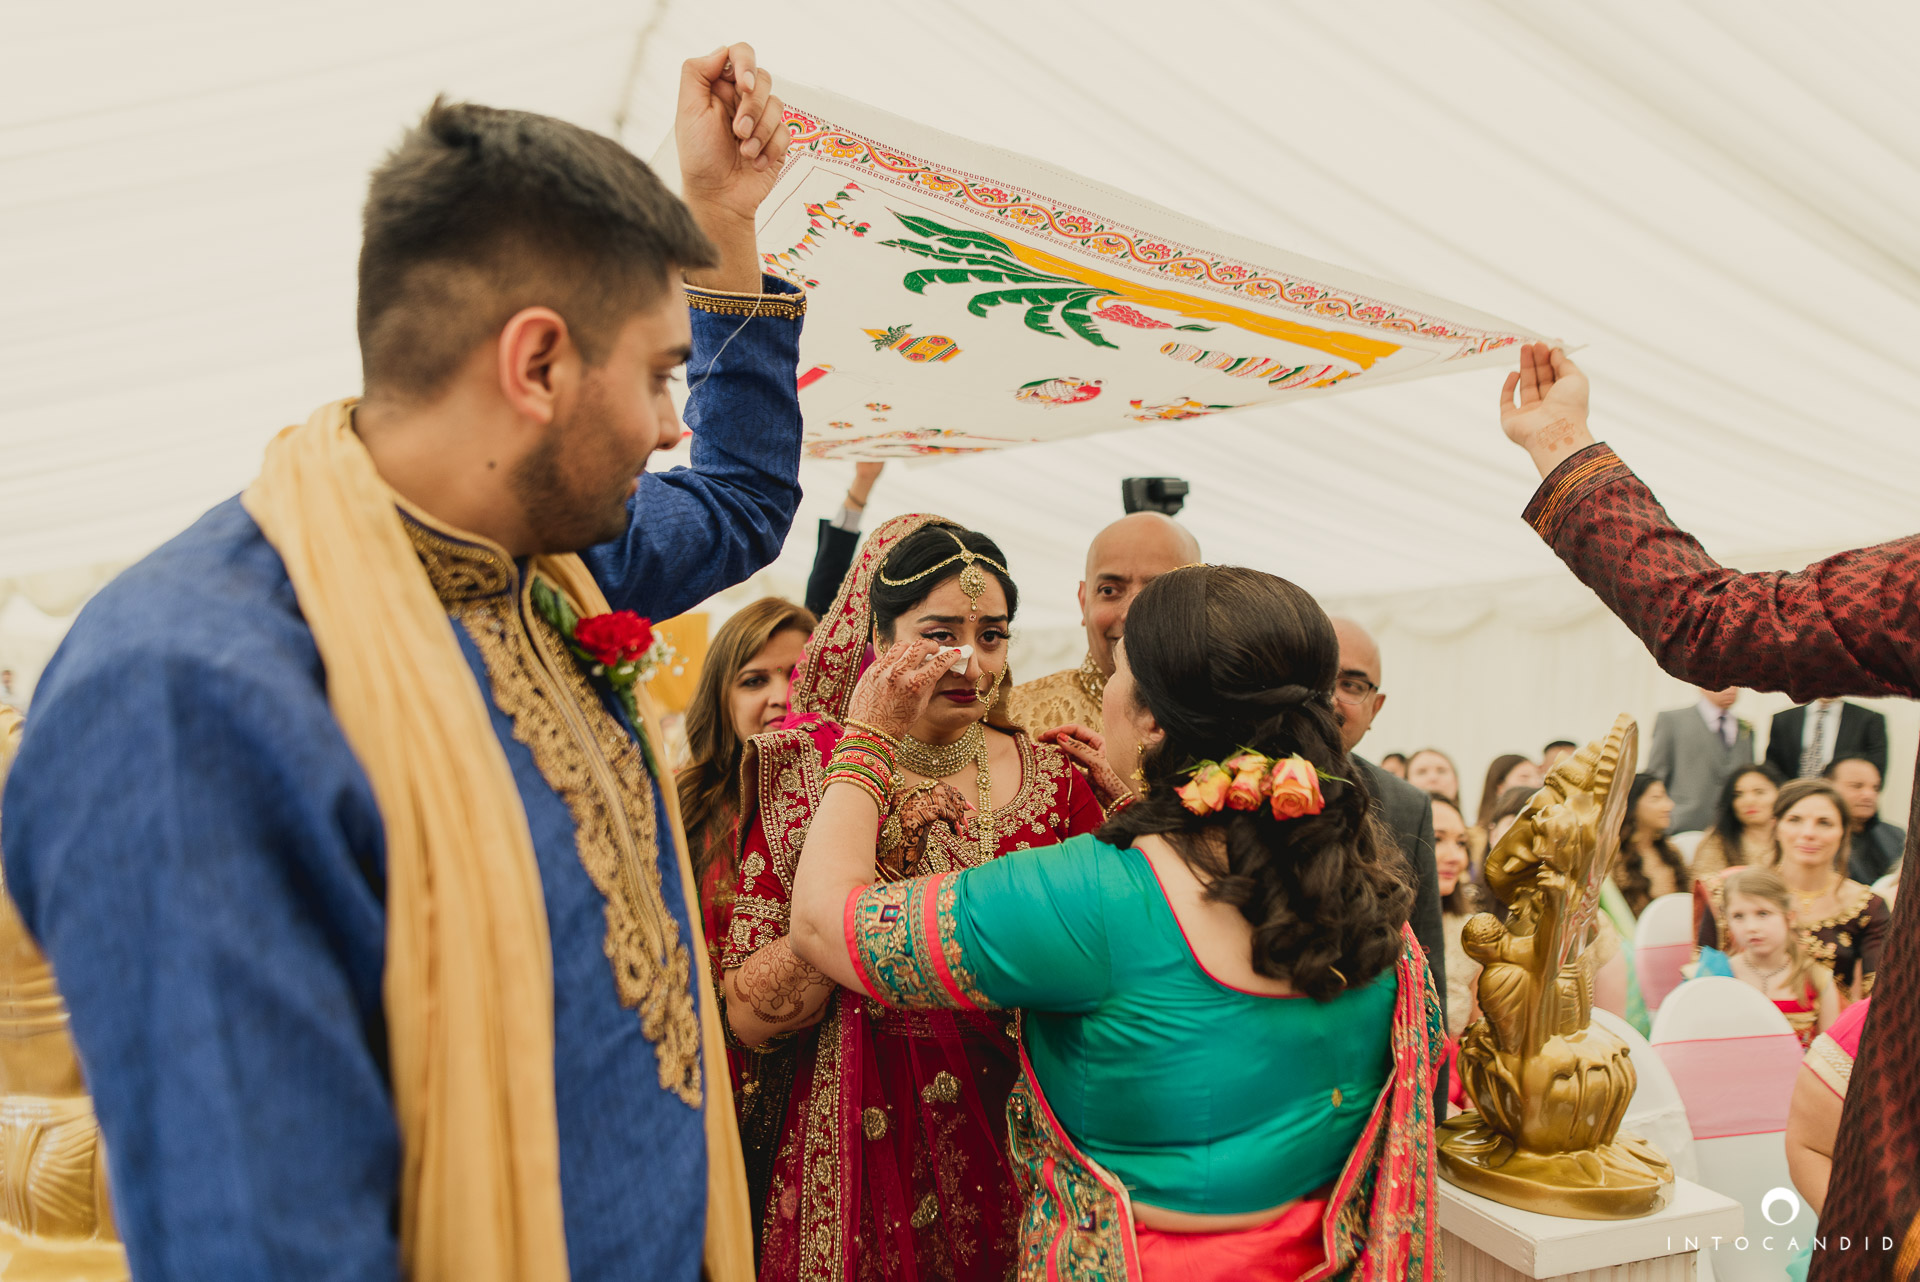 London_Wedding_Photographer_Intocandid_Photography_Ketan & Manasvi_40.JPG